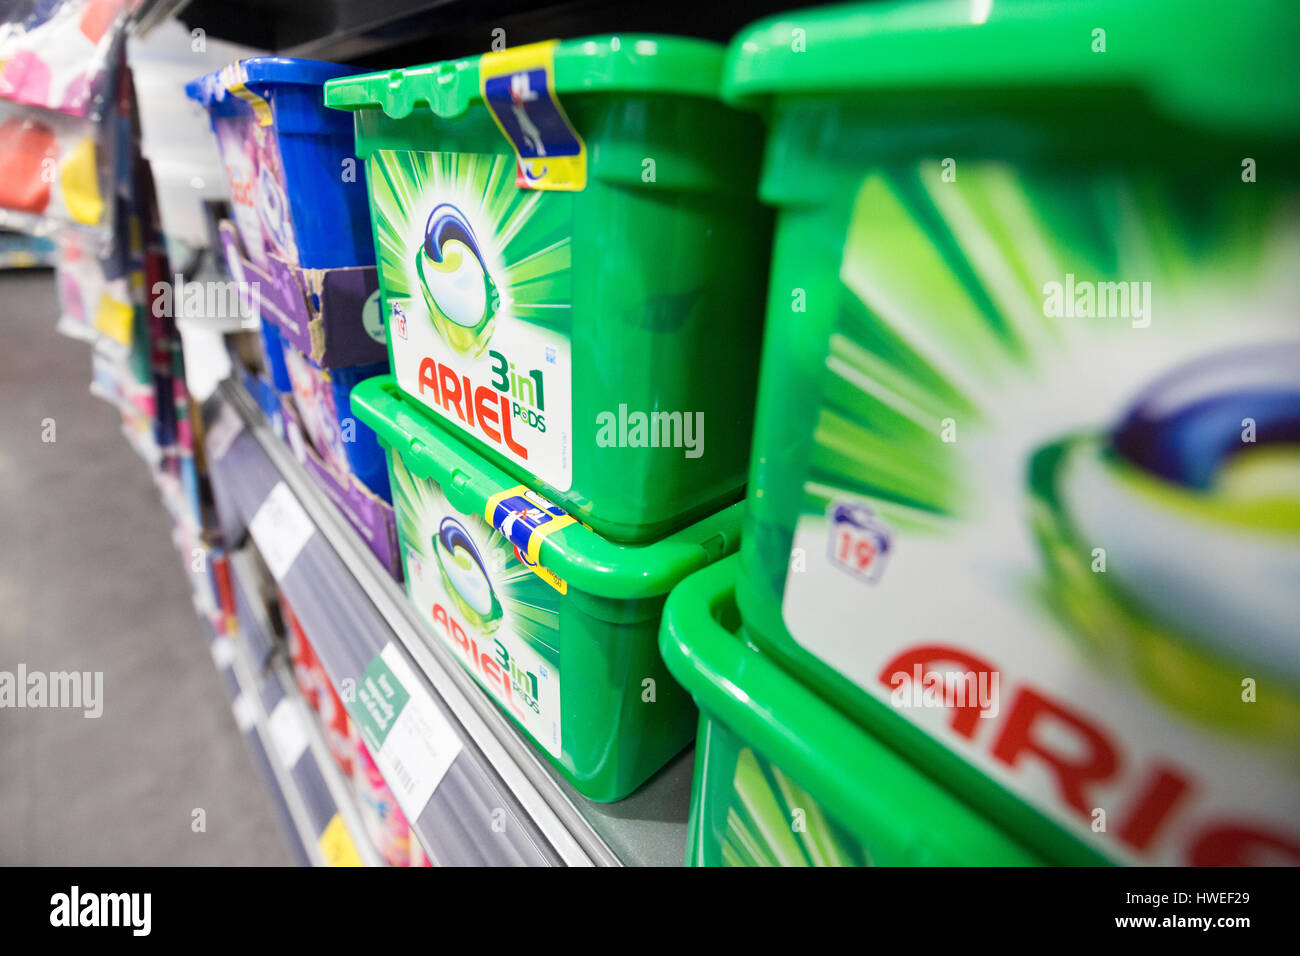 Ariel washing liquid on sale in a Morrisons supermarket - Stock Image